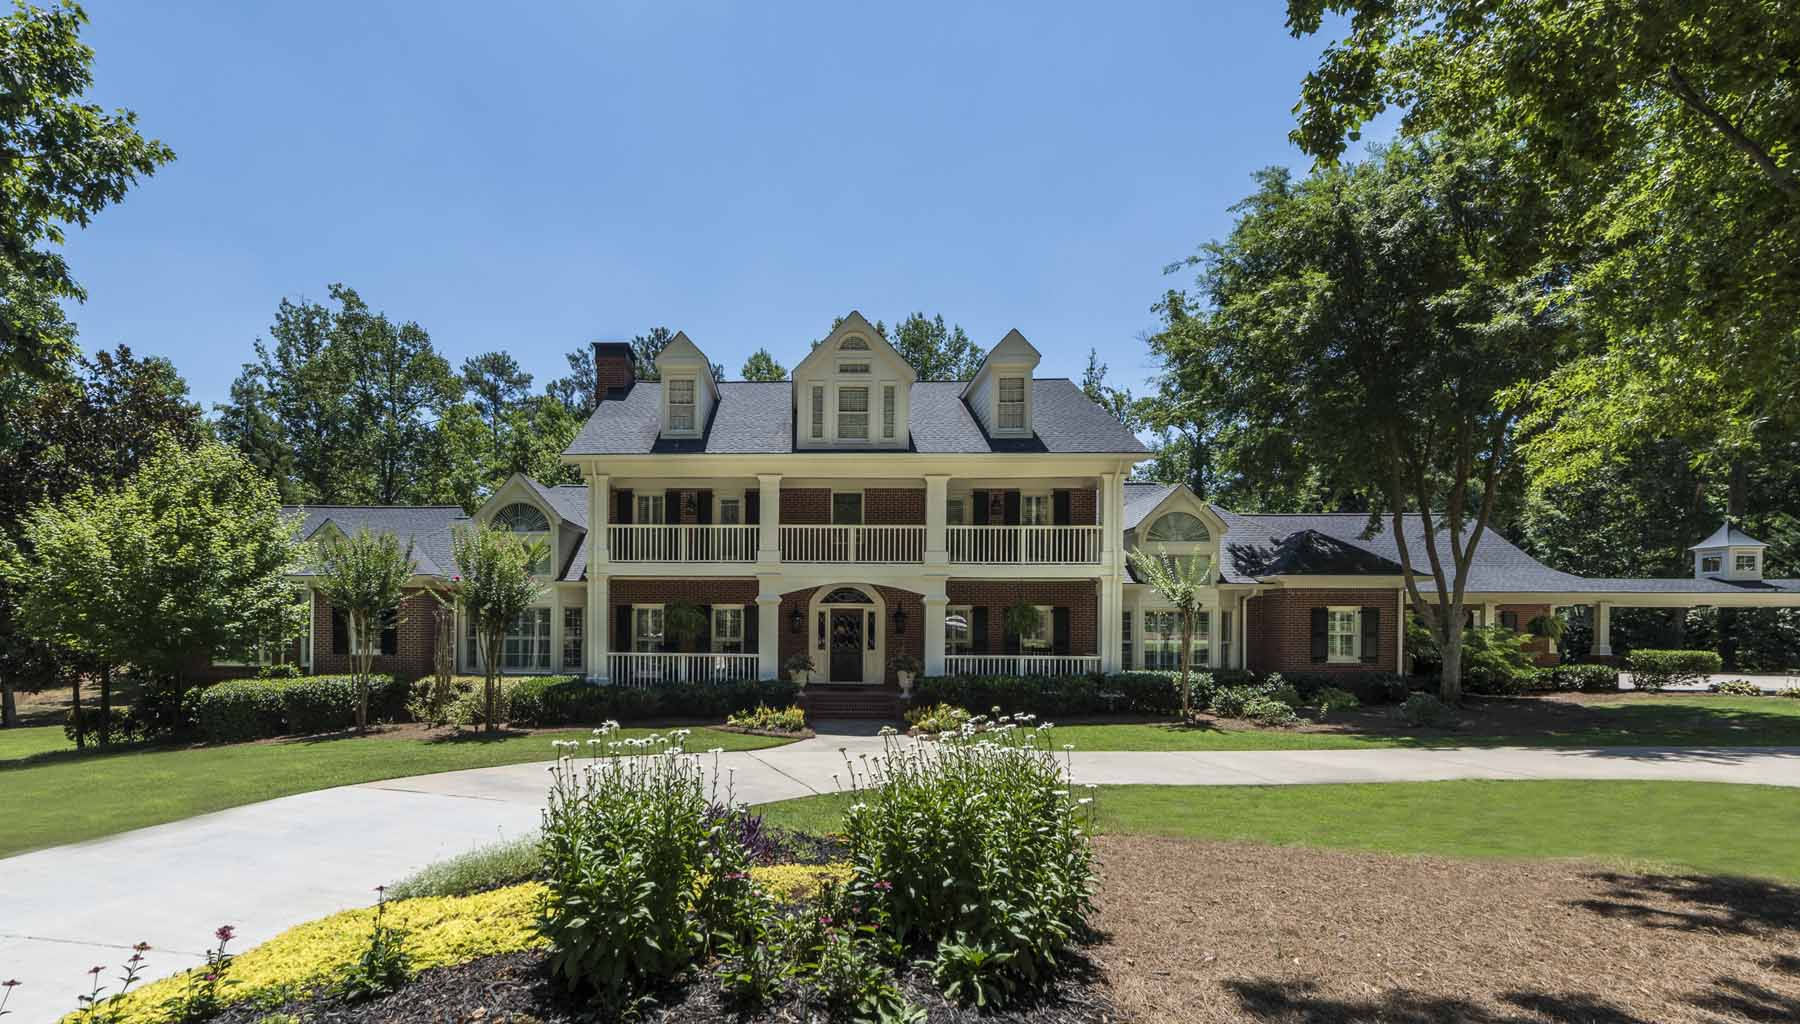 Moradia para Venda às Extraordinary Property in Johns Creek 345 Bardolier Johns Creek, Georgia 30022 United States